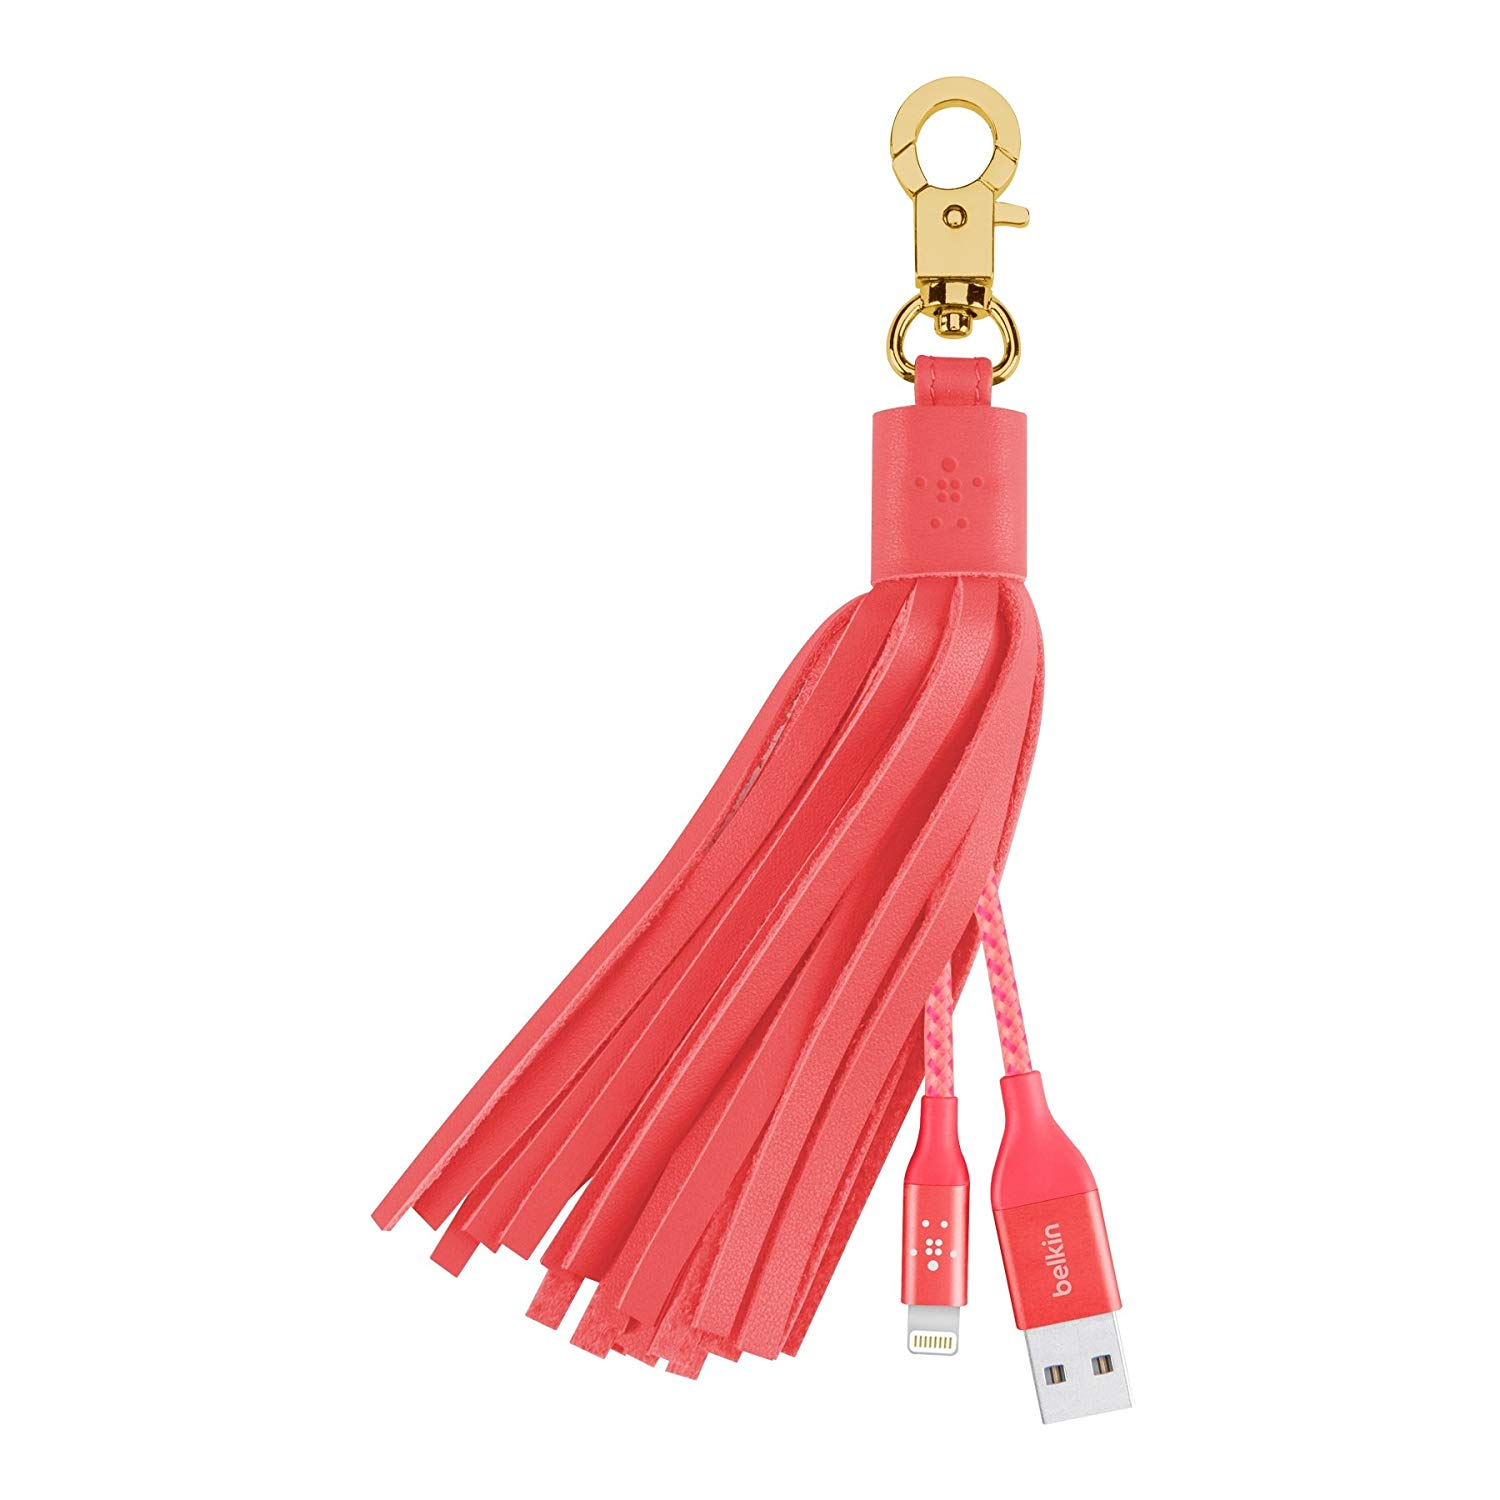 keychain with usb cord